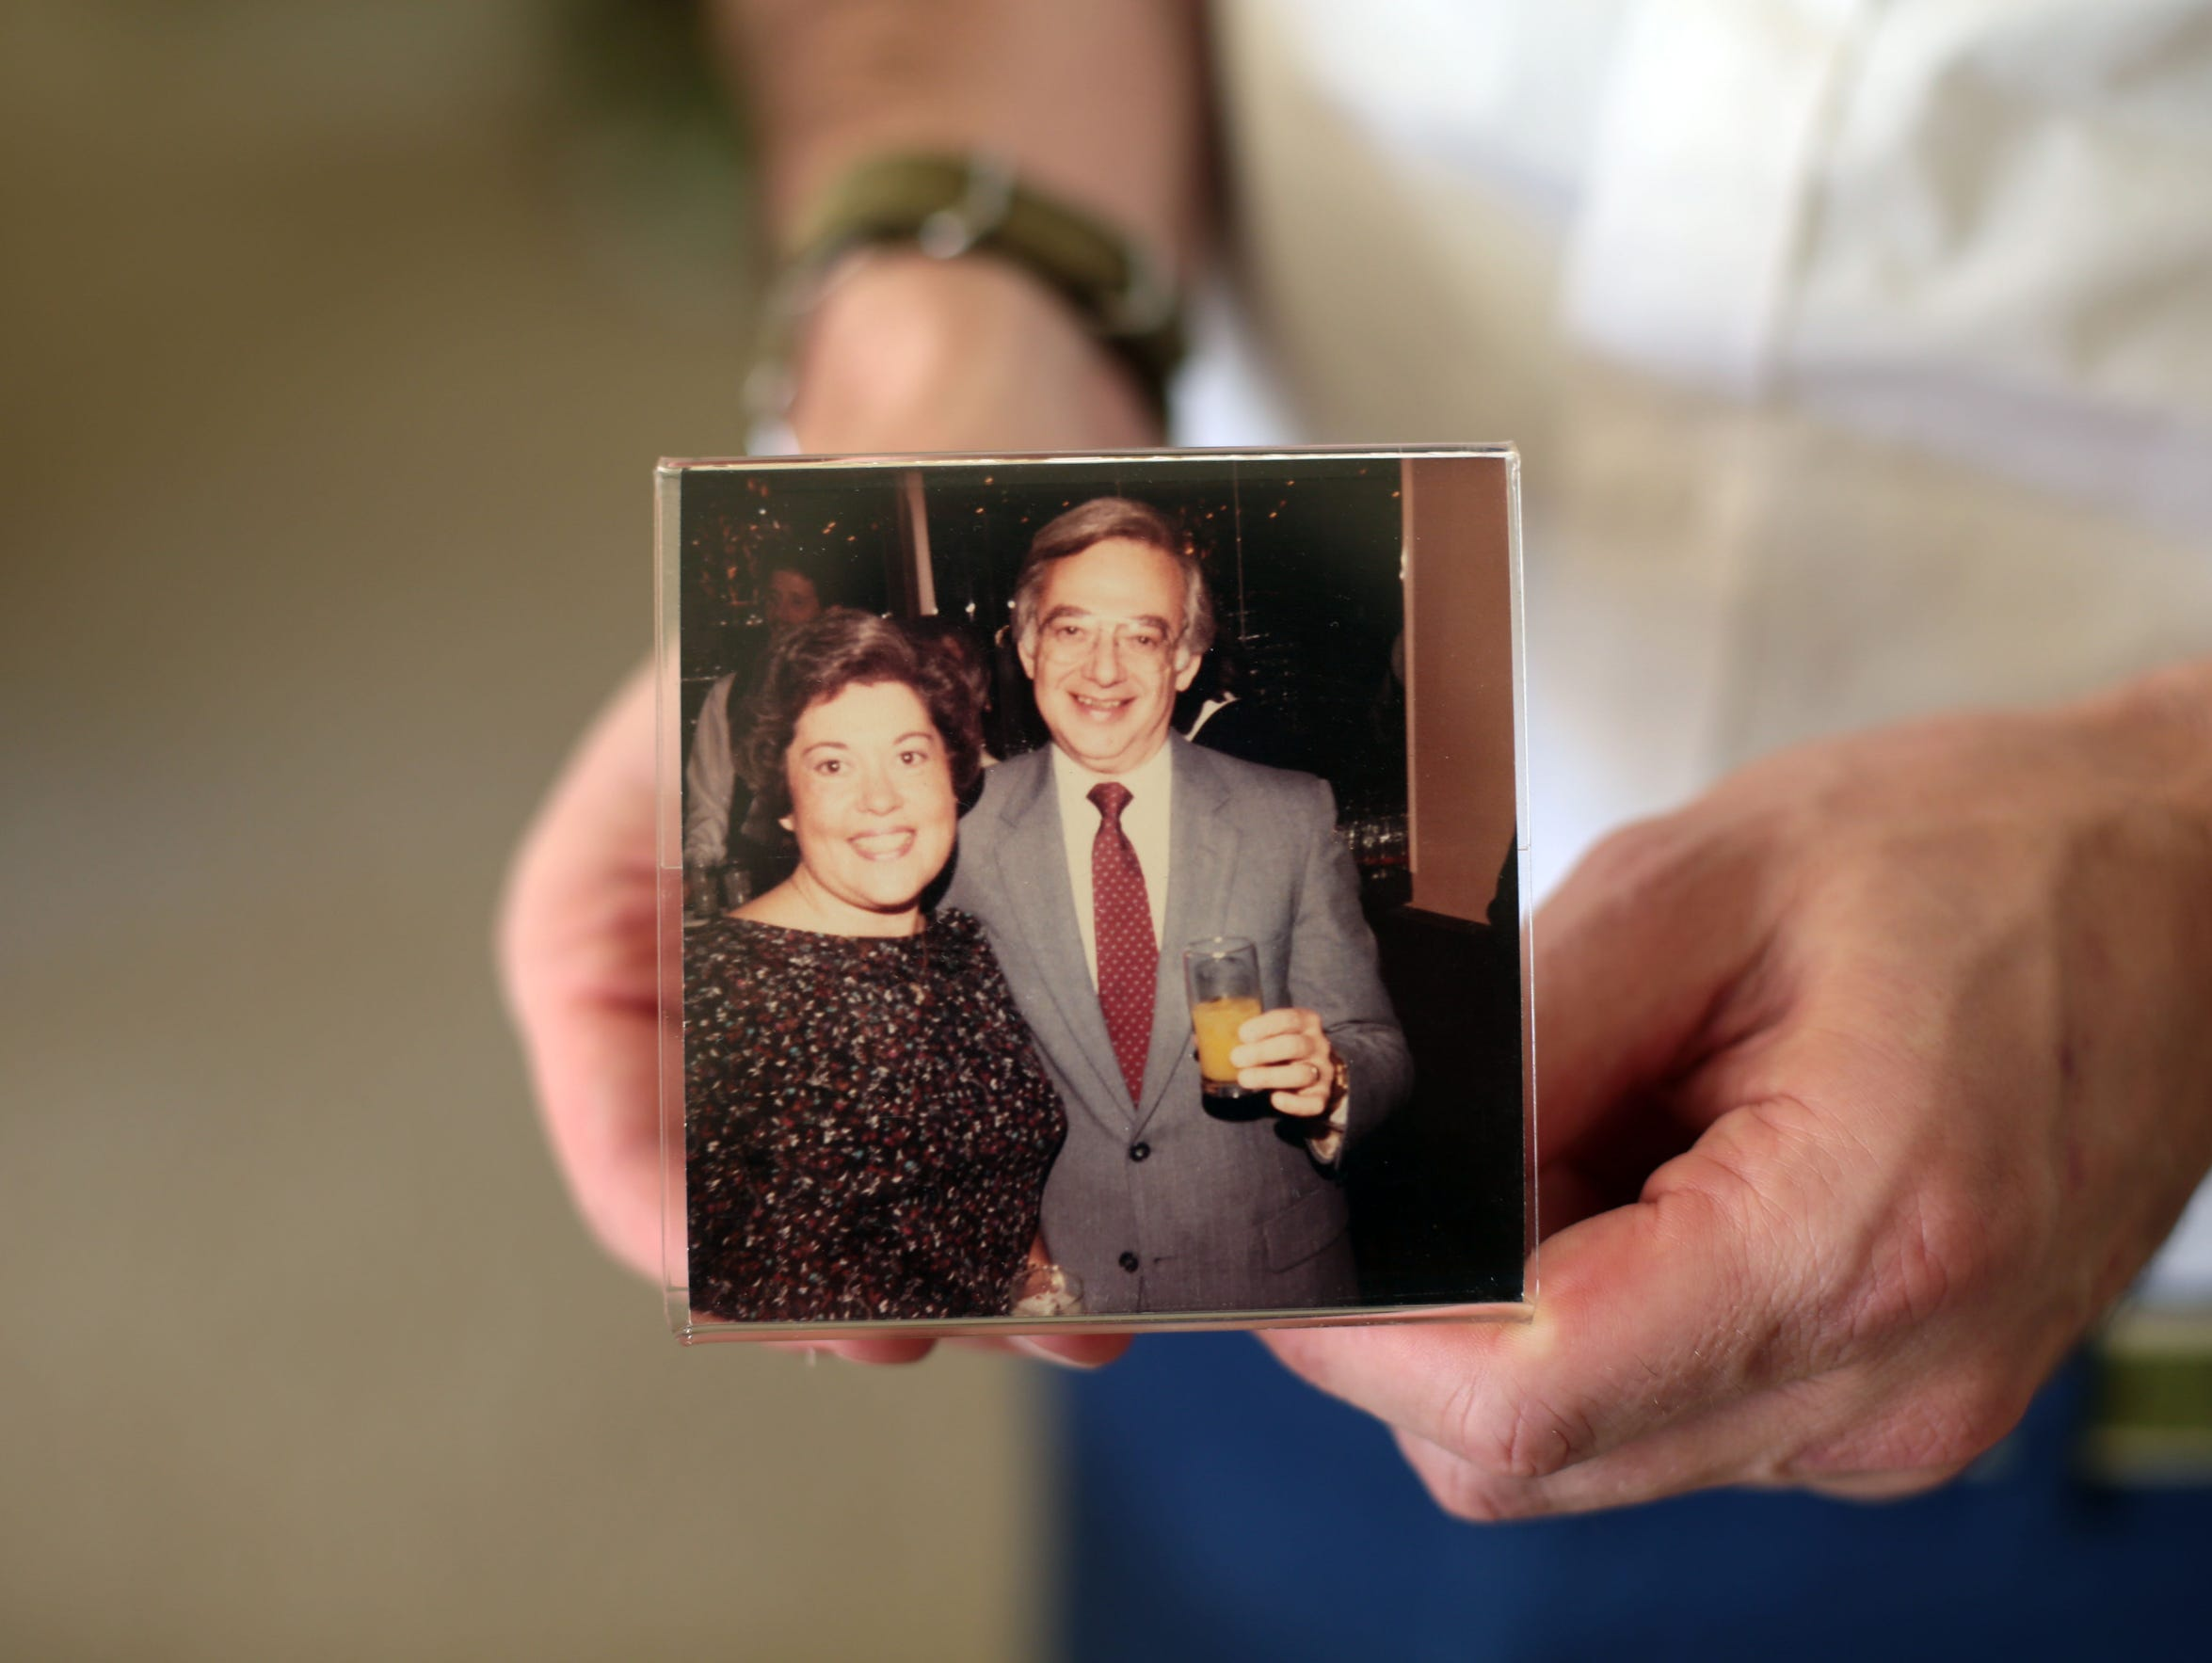 Jerry Sallo holds a photo of himself and his wife Jane